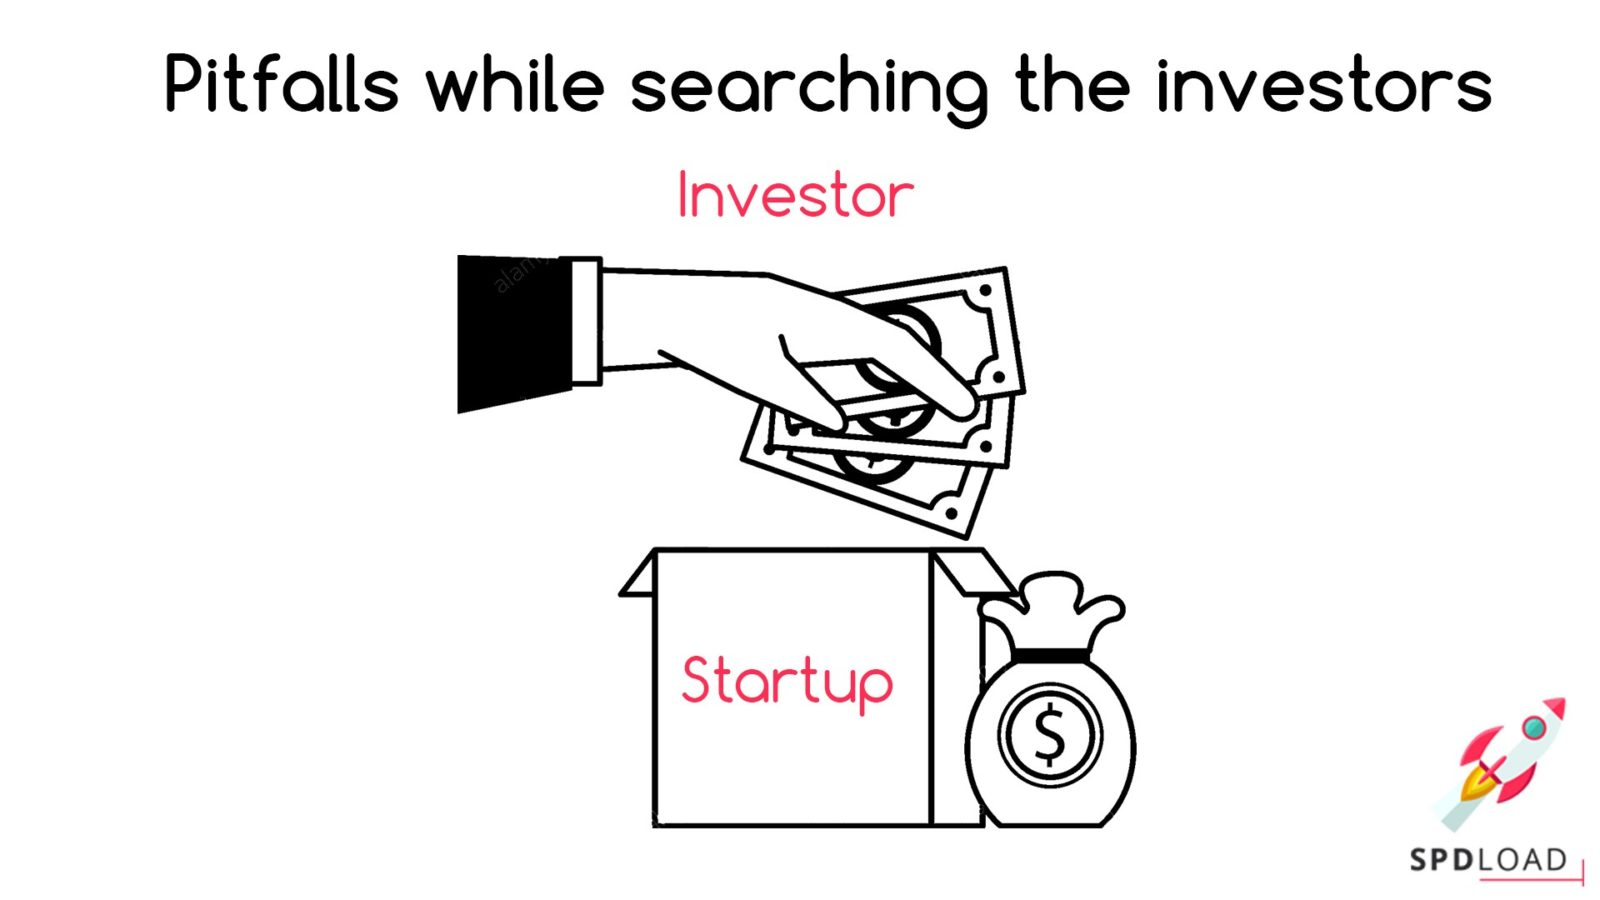 While searching for investor